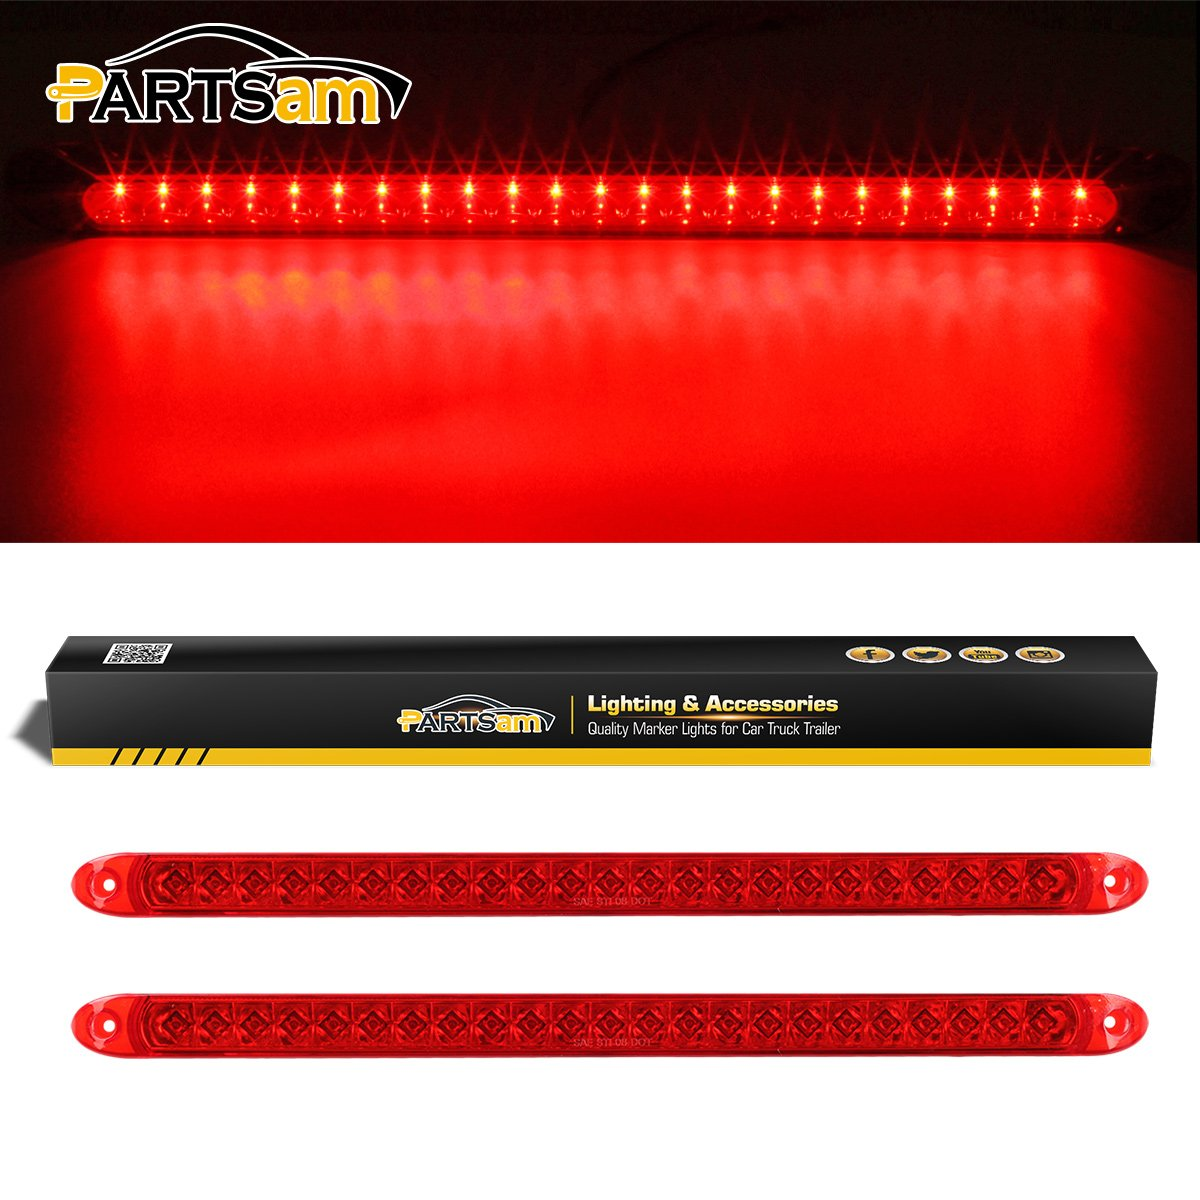 Partsam 2pc Red 17 23 Led Light Bar Stop Turn Tail Brake Signal Cluster Third 3rd Car Truck Trailer Rv Bus Boat Identification Id Waterproof